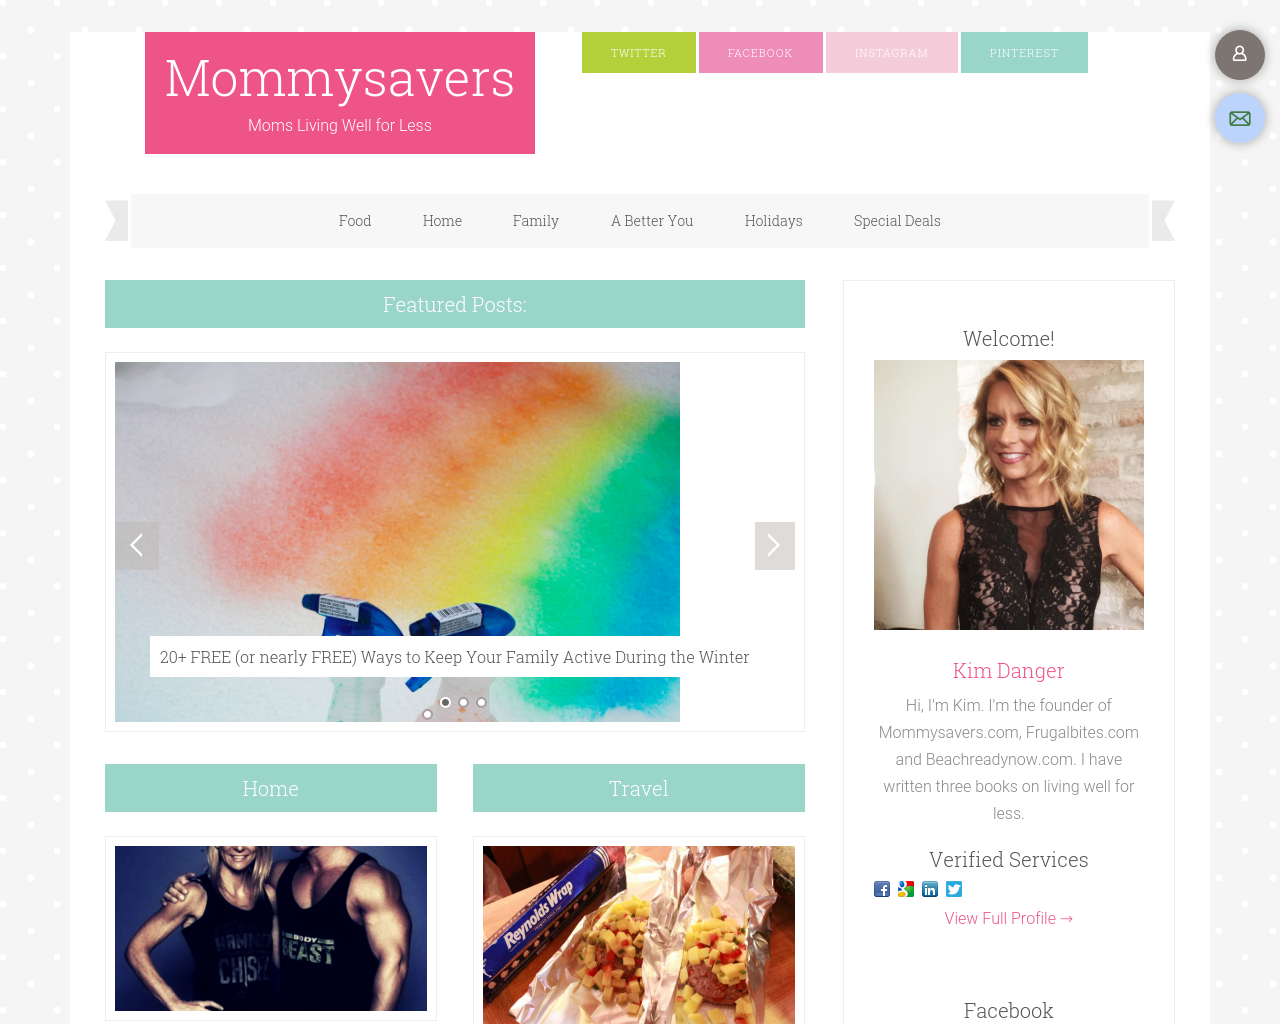 MOMMY-SAVERS-Advertising-Reviews-Pricing